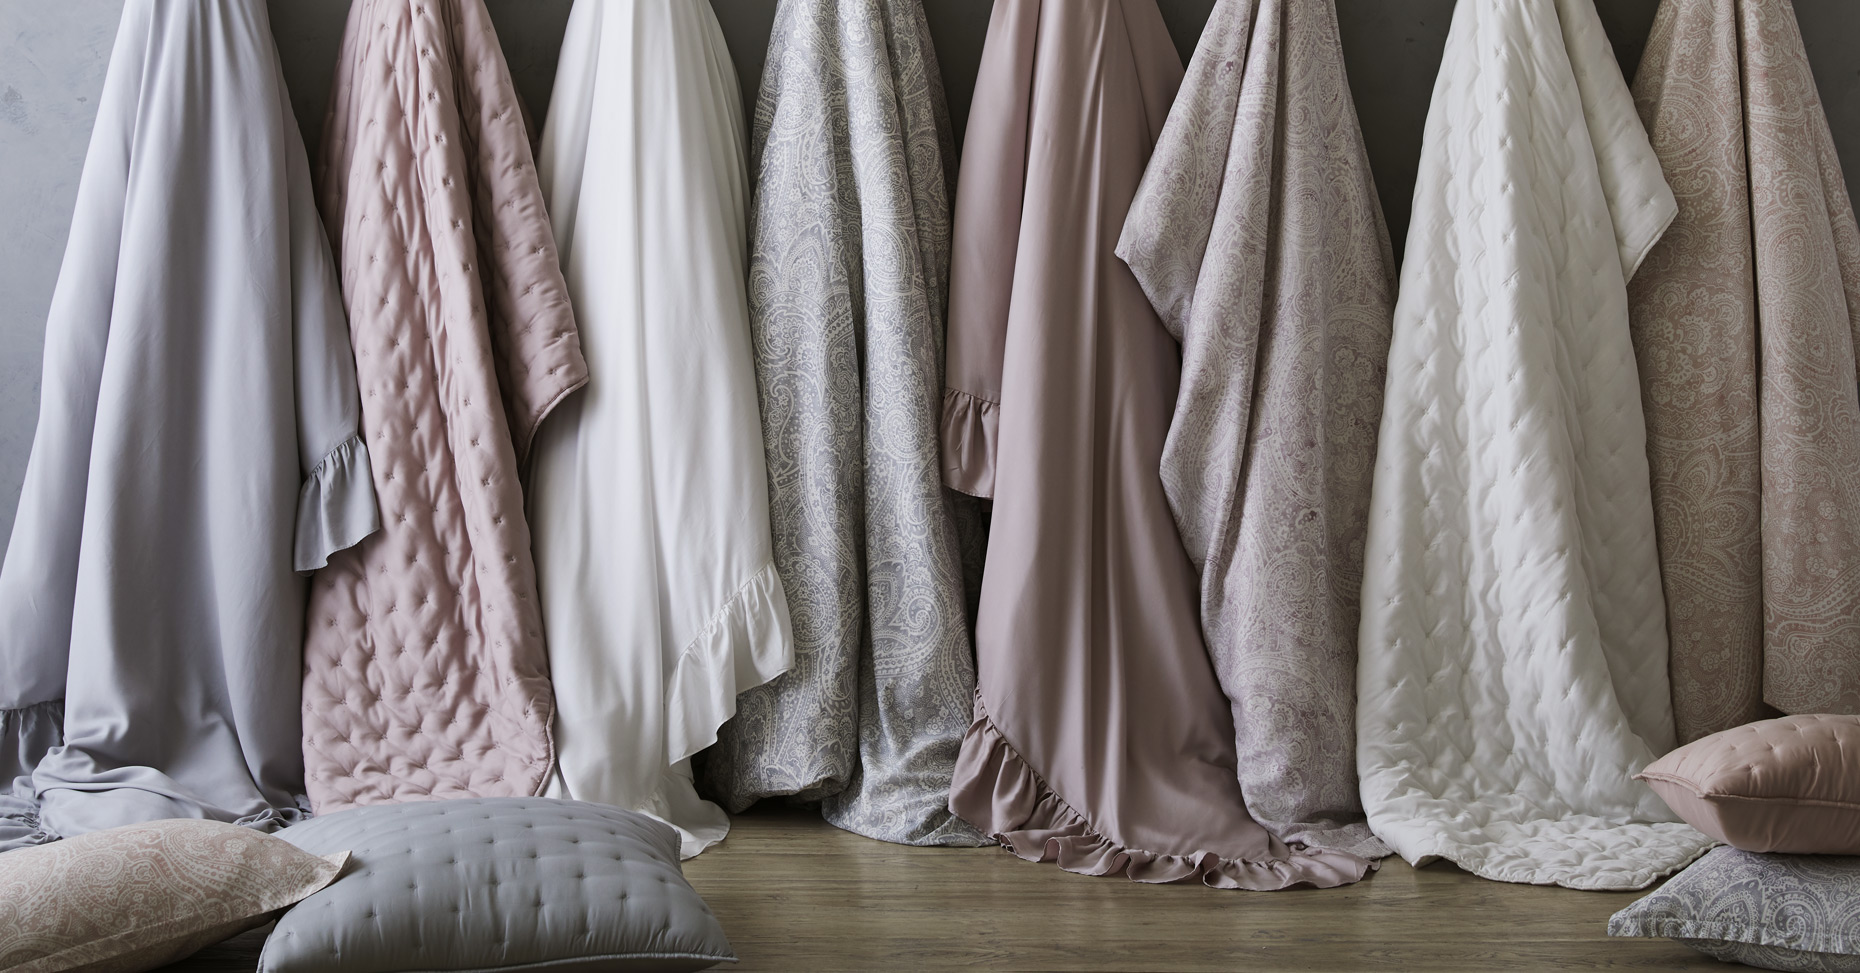 Hanging blanket collection with pillows